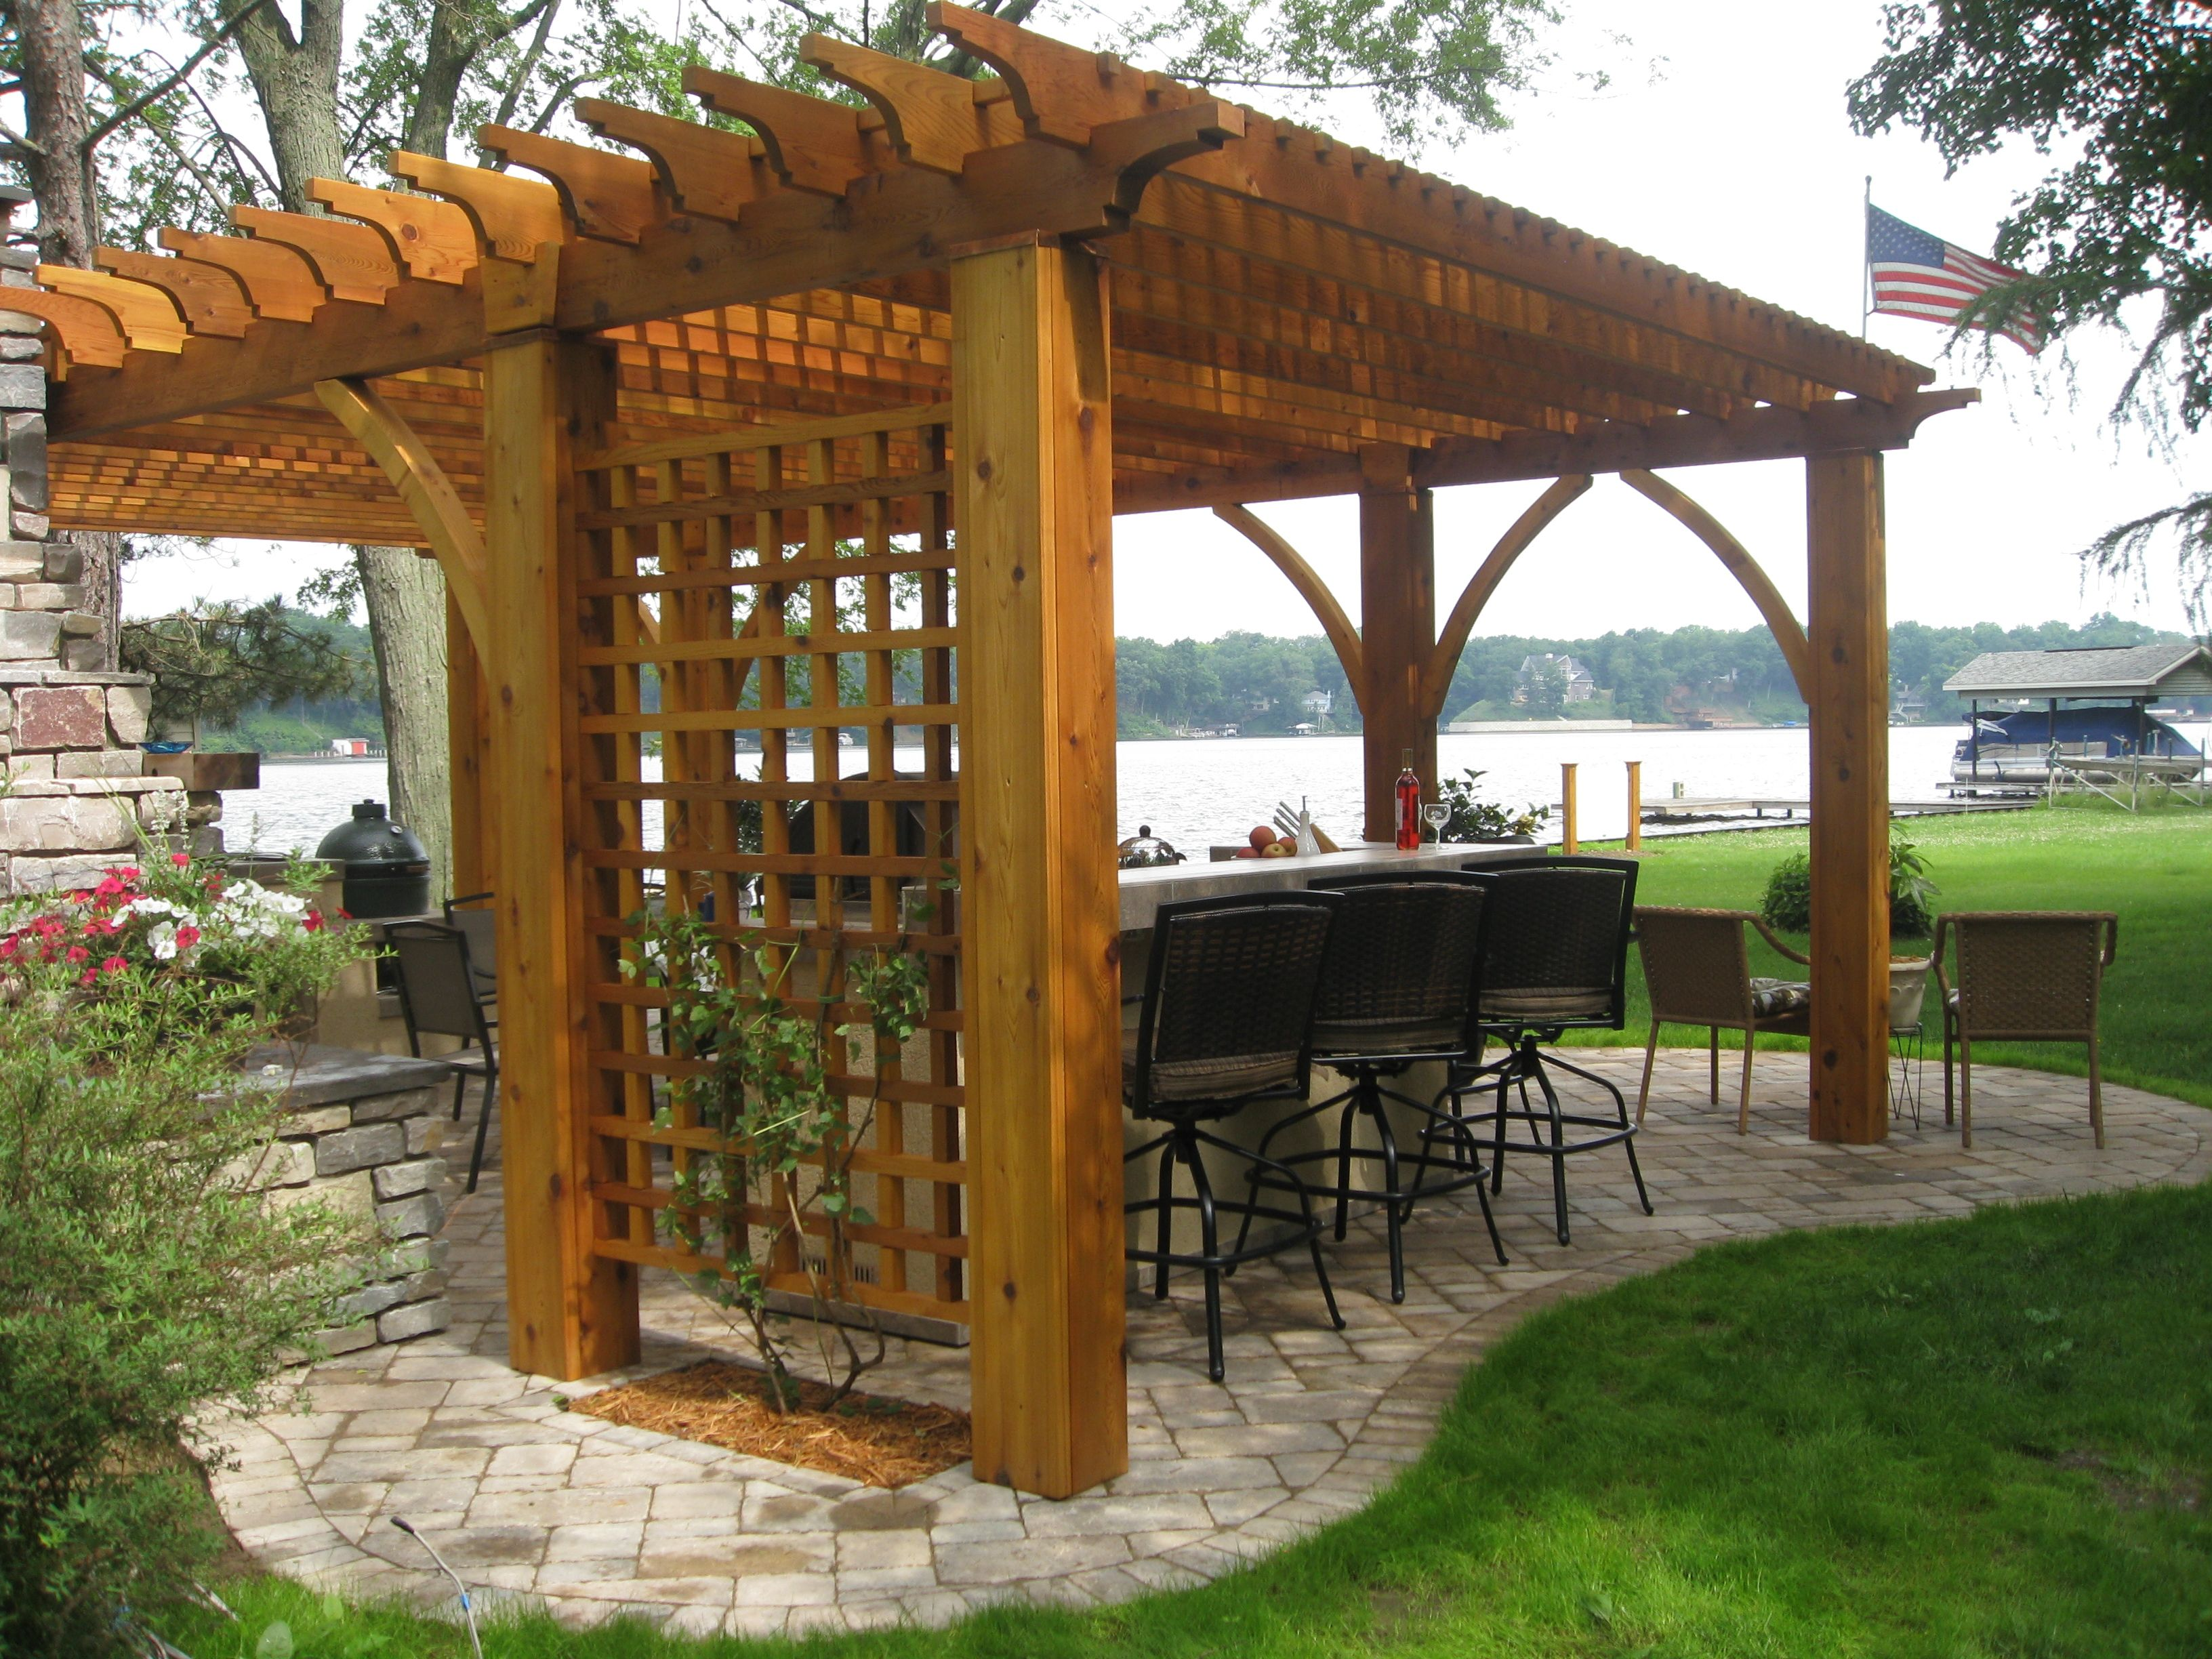 Pergola with siding for vertical gardening not organic patio